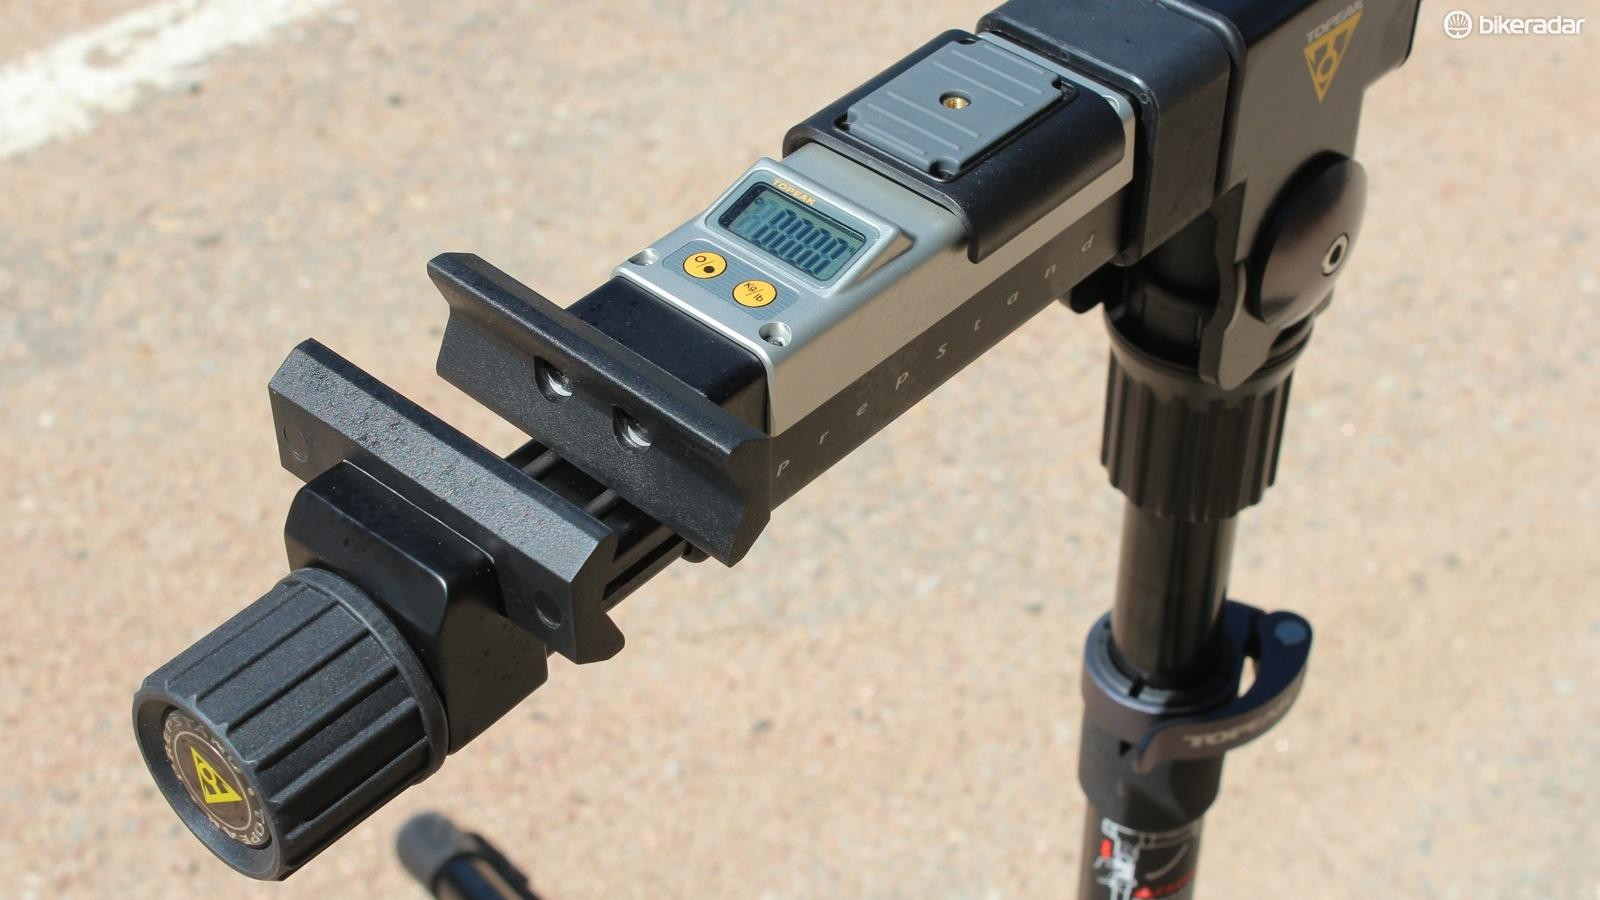 The Prepstand Pro has an integrated digital scale for weighing parts and bikes alike